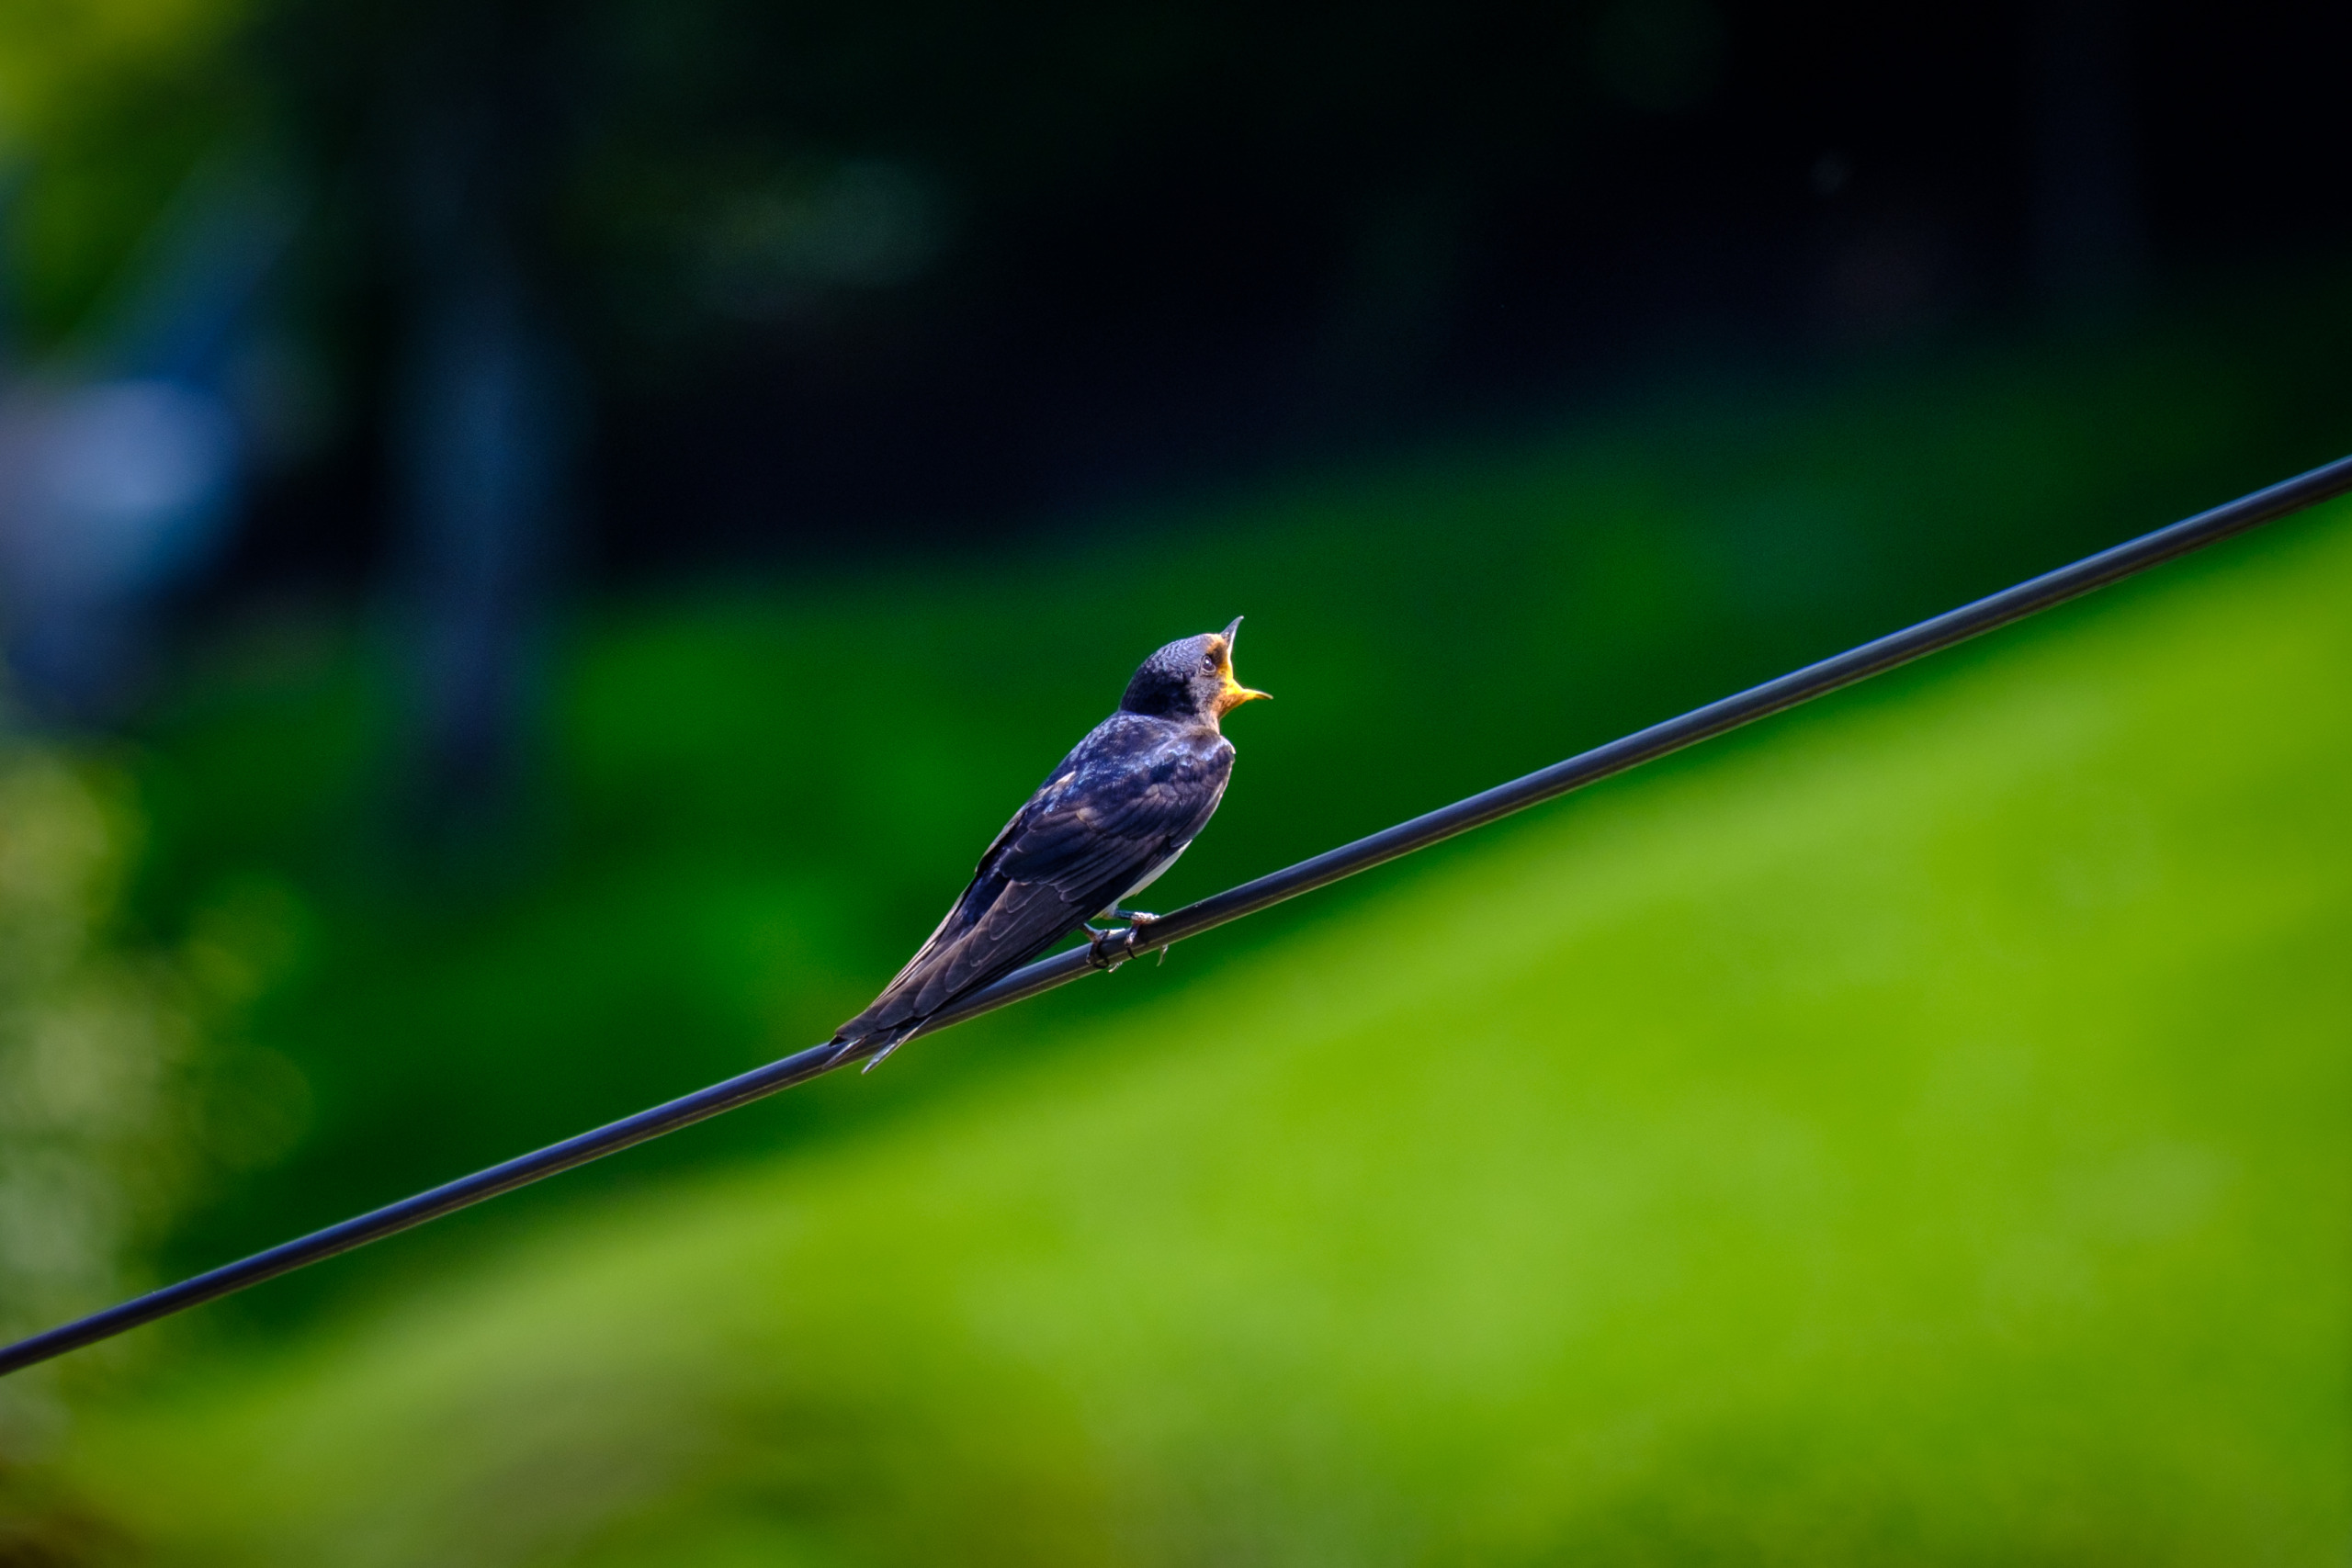 Swallow on a telephone wire